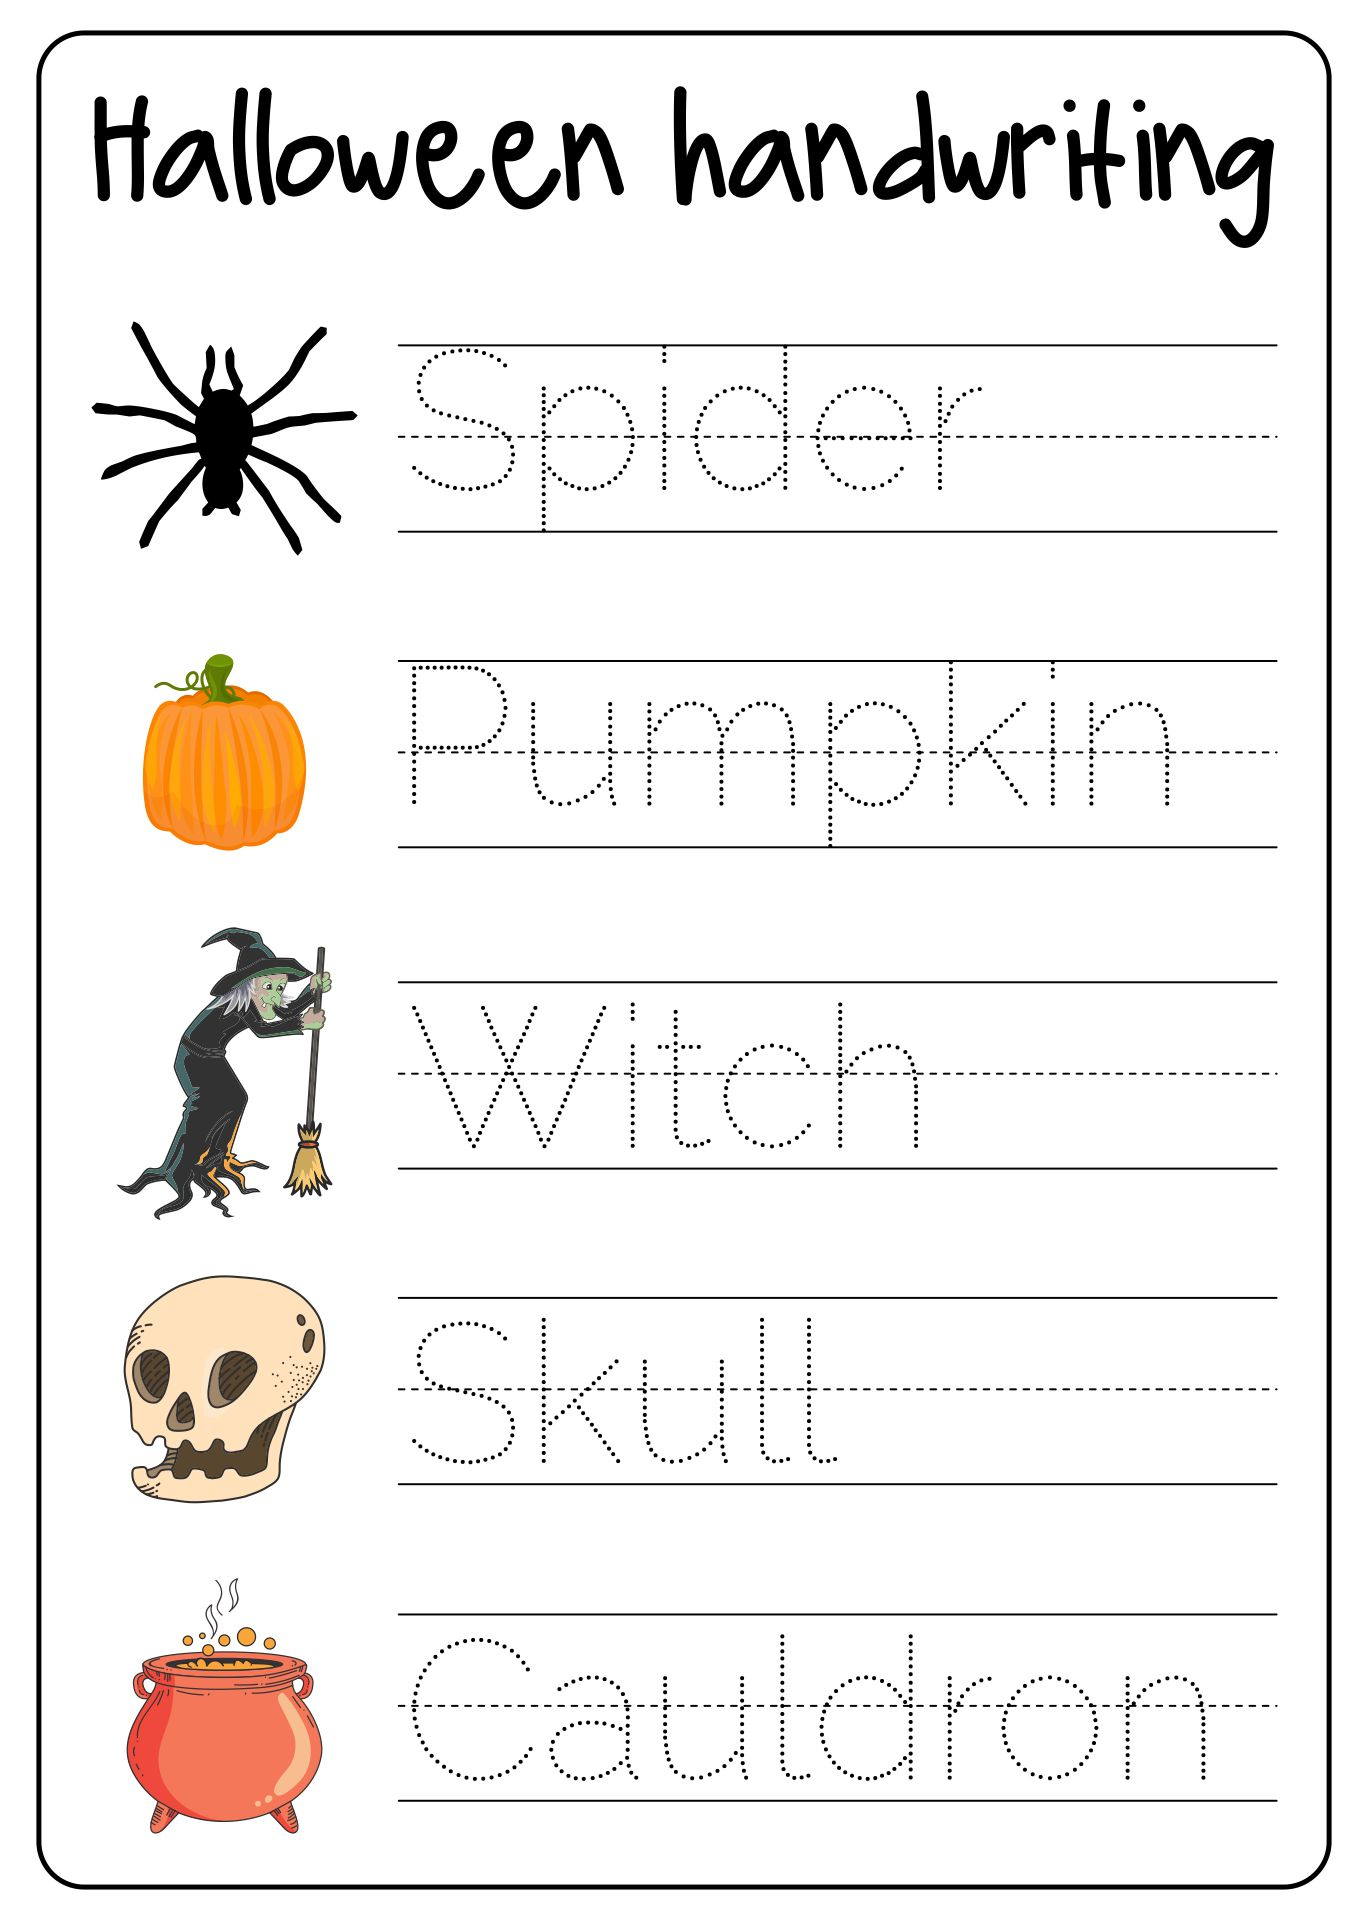 Fun Halloween Activities And Games For Young Kids Printable